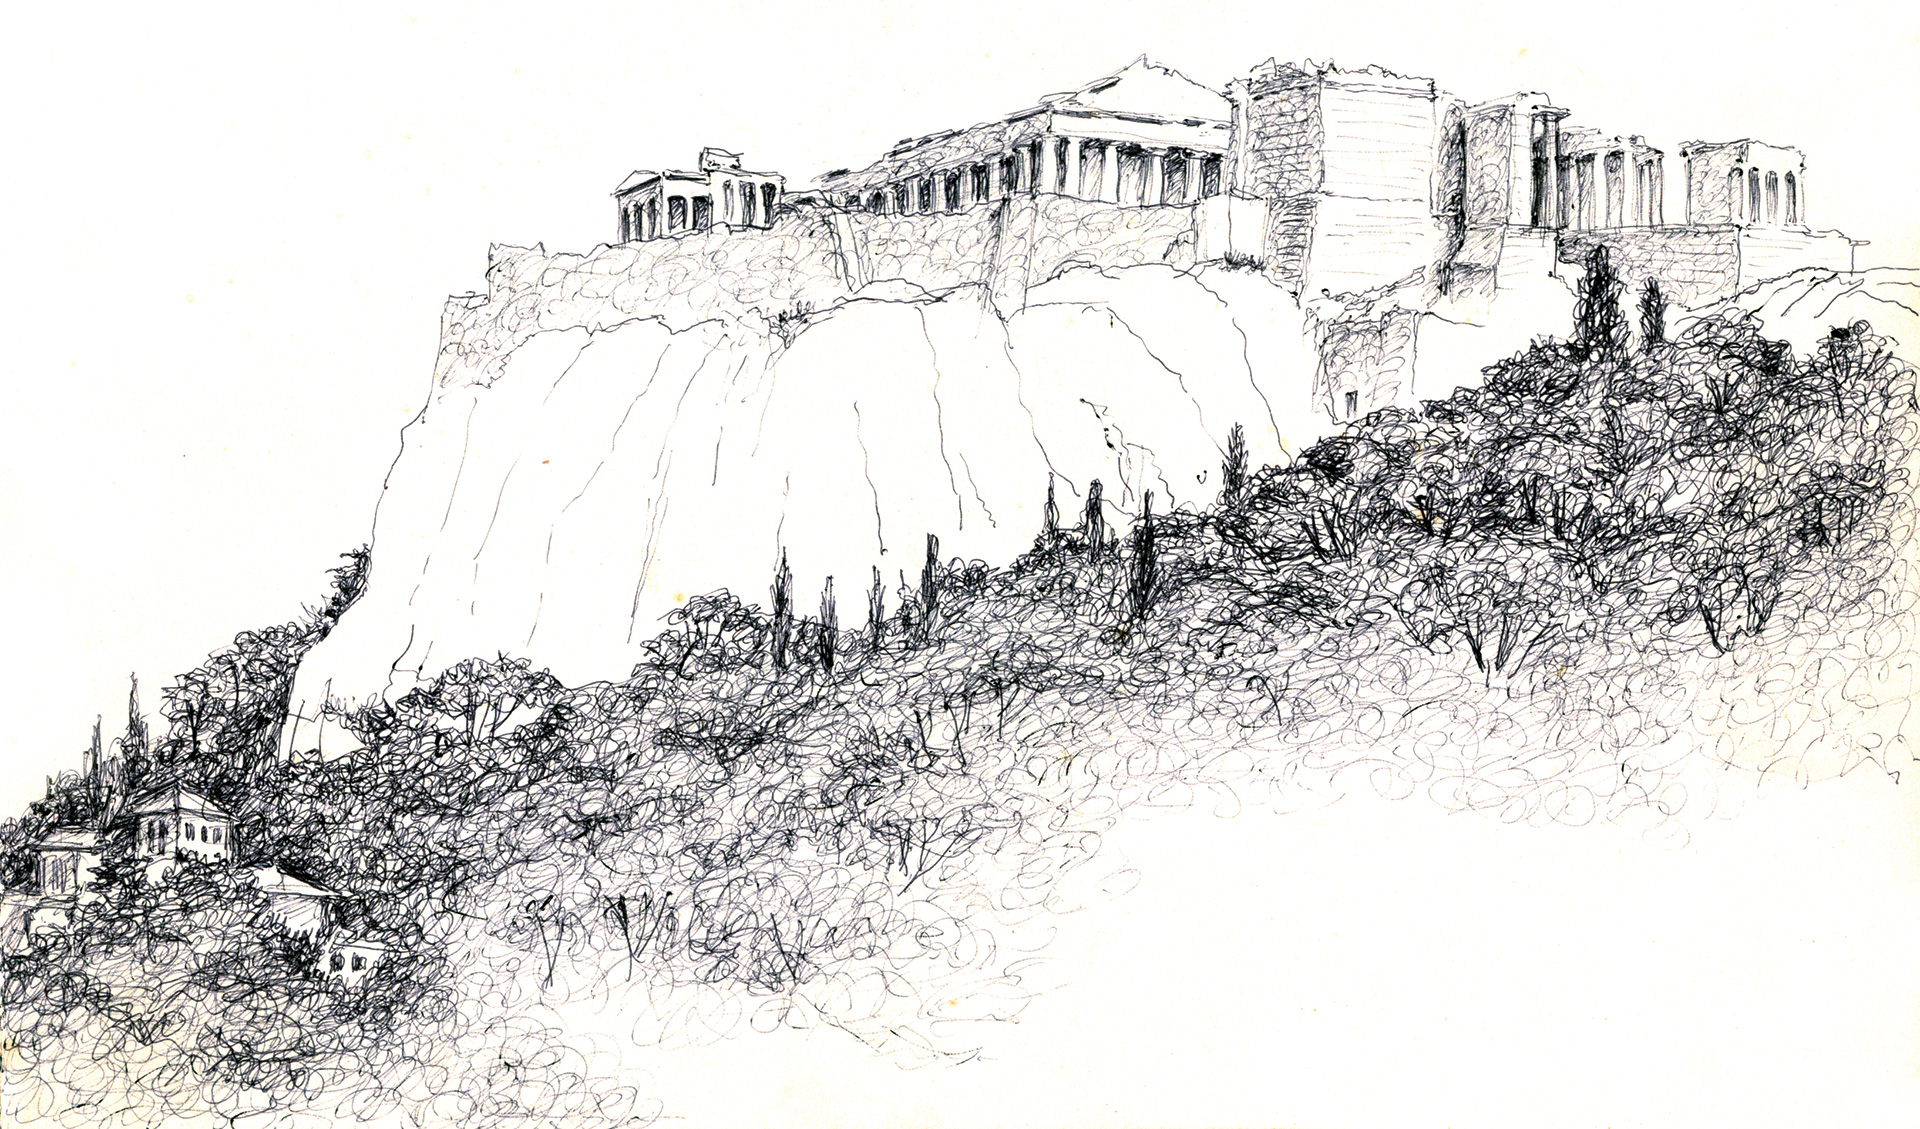 Sketch of the Acropolis by Shirish Beri |Acropolis | Shirish Beri | STIRworld